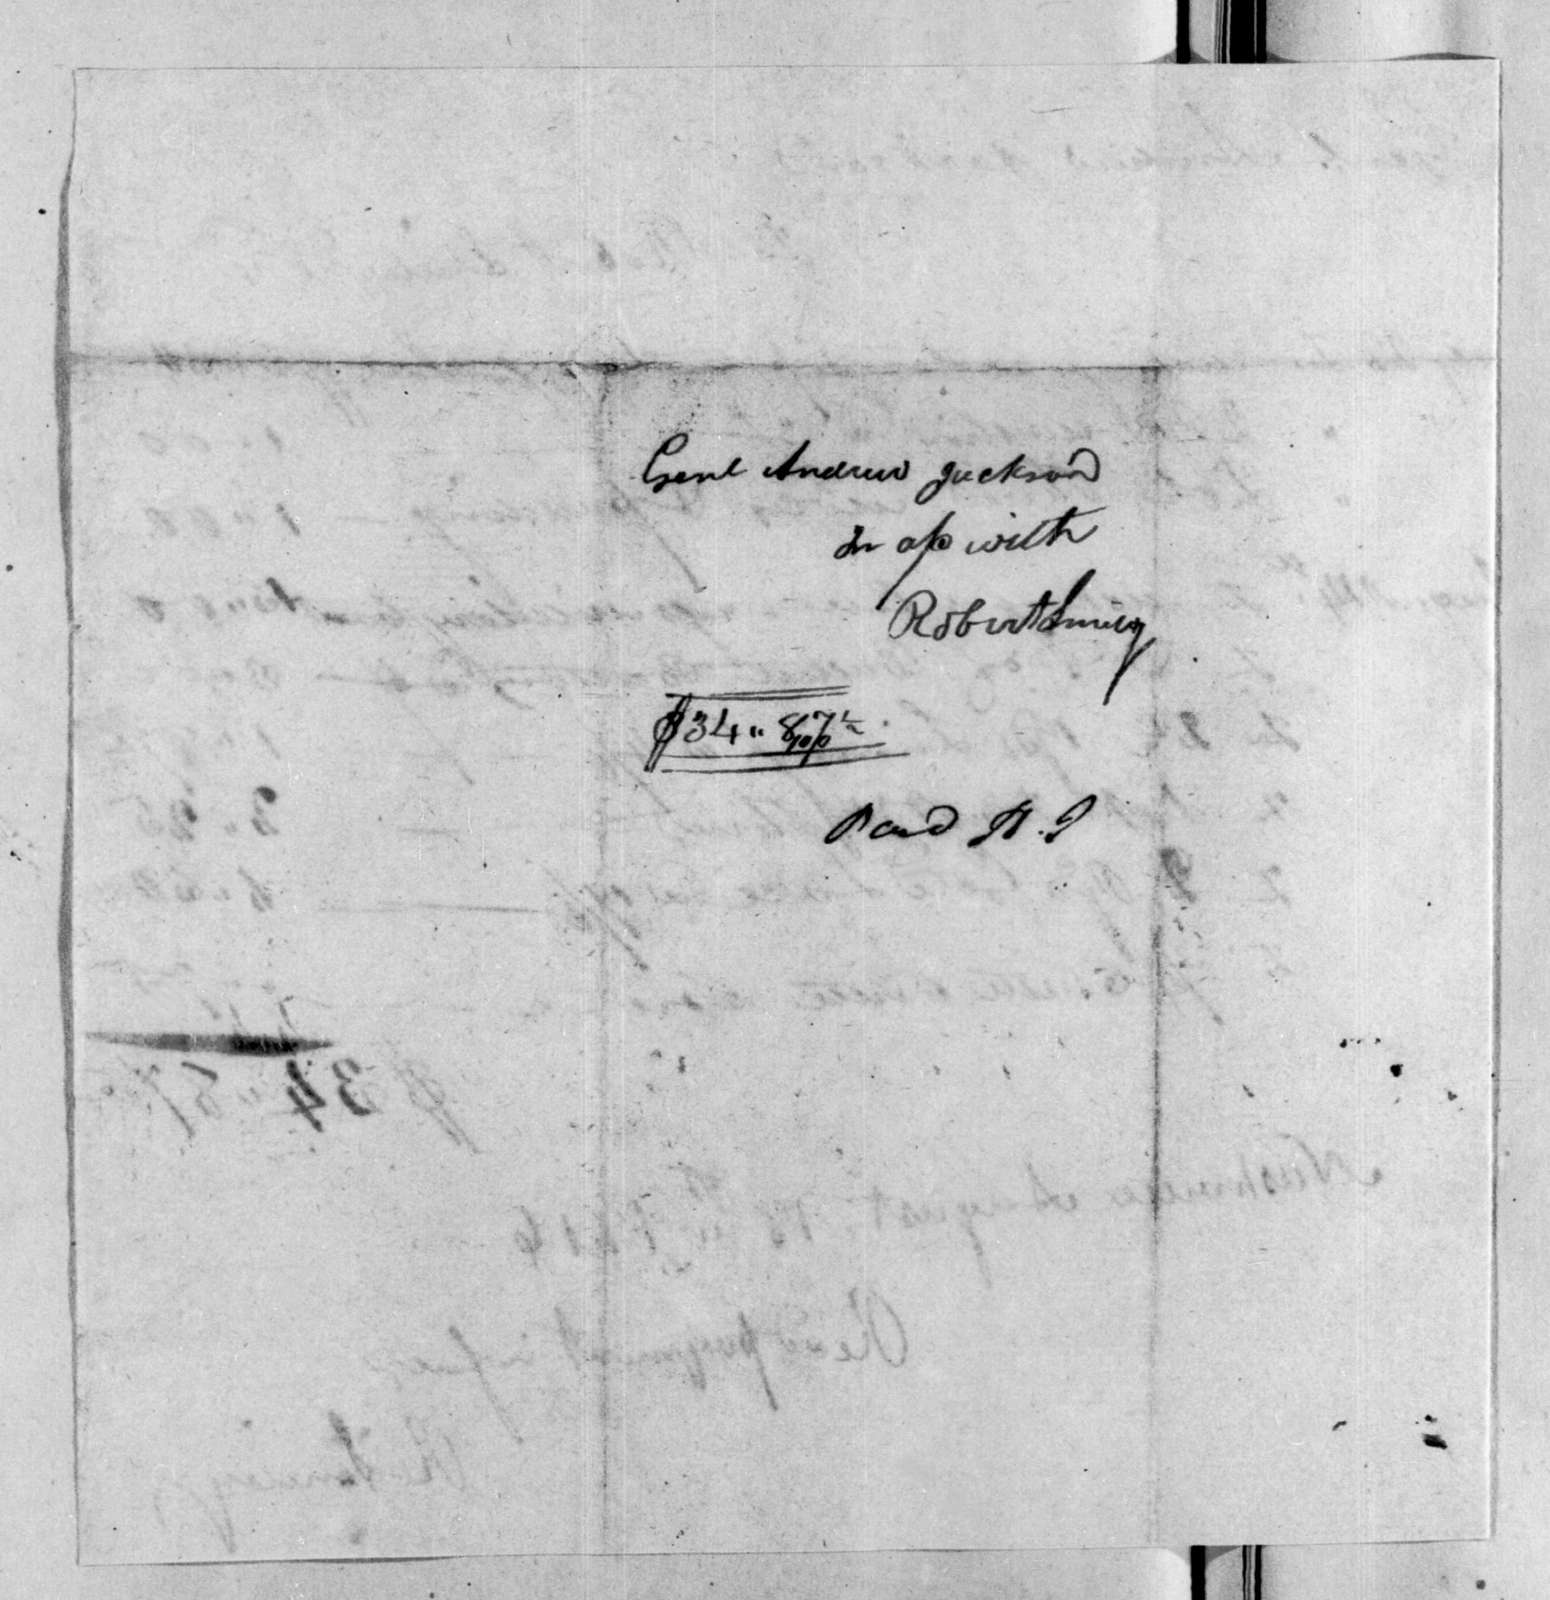 Robert Smiley to Andrew Jackson, August 18, 1816